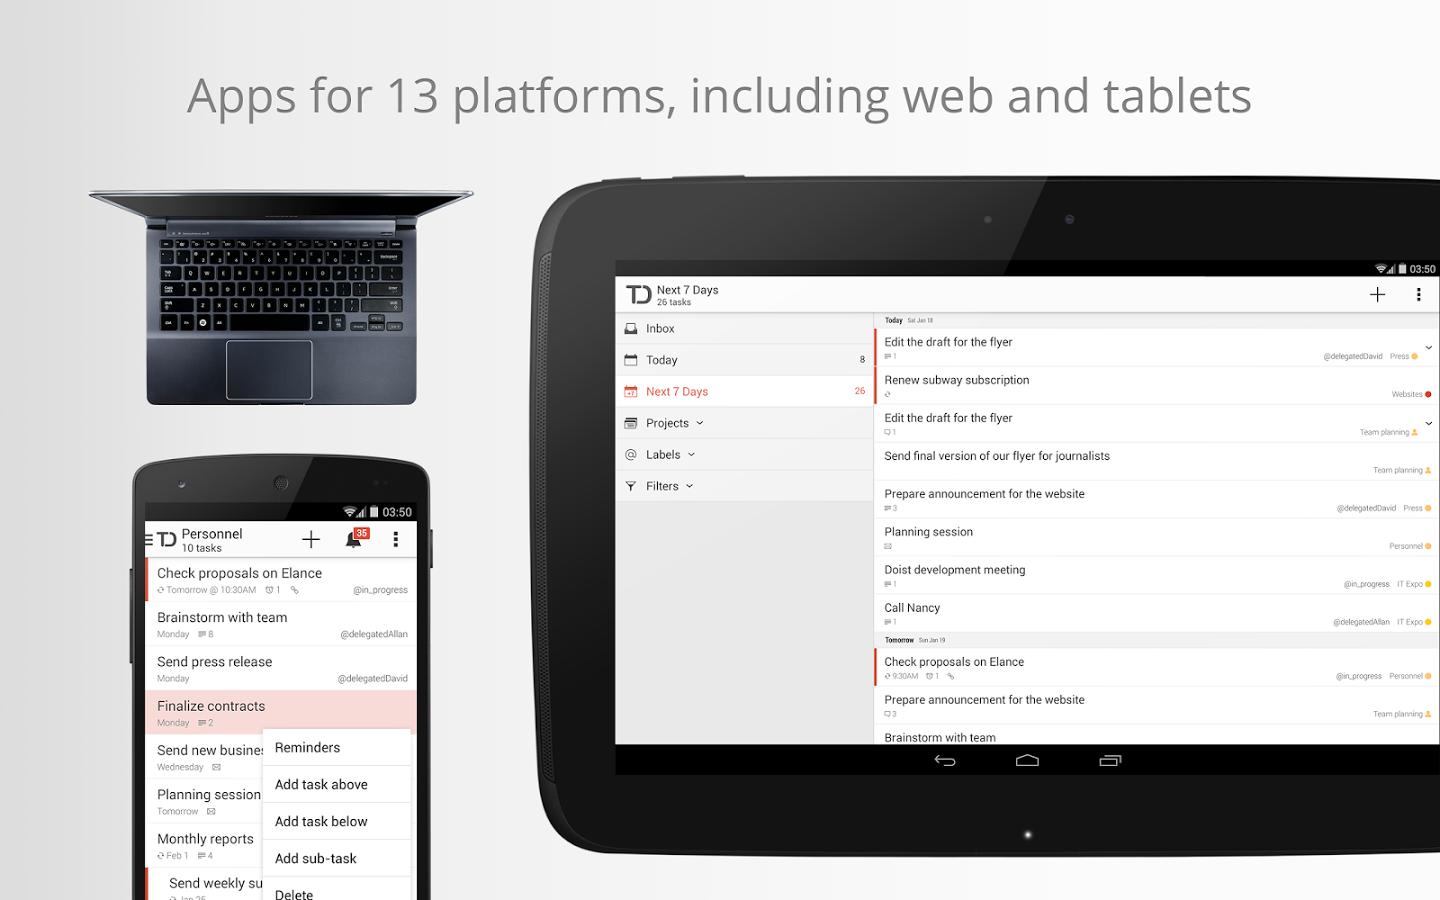 Todoist-To-Do-List,-Task-List-Premium-v7.1.1-Screenshot-APK-apkfly.com